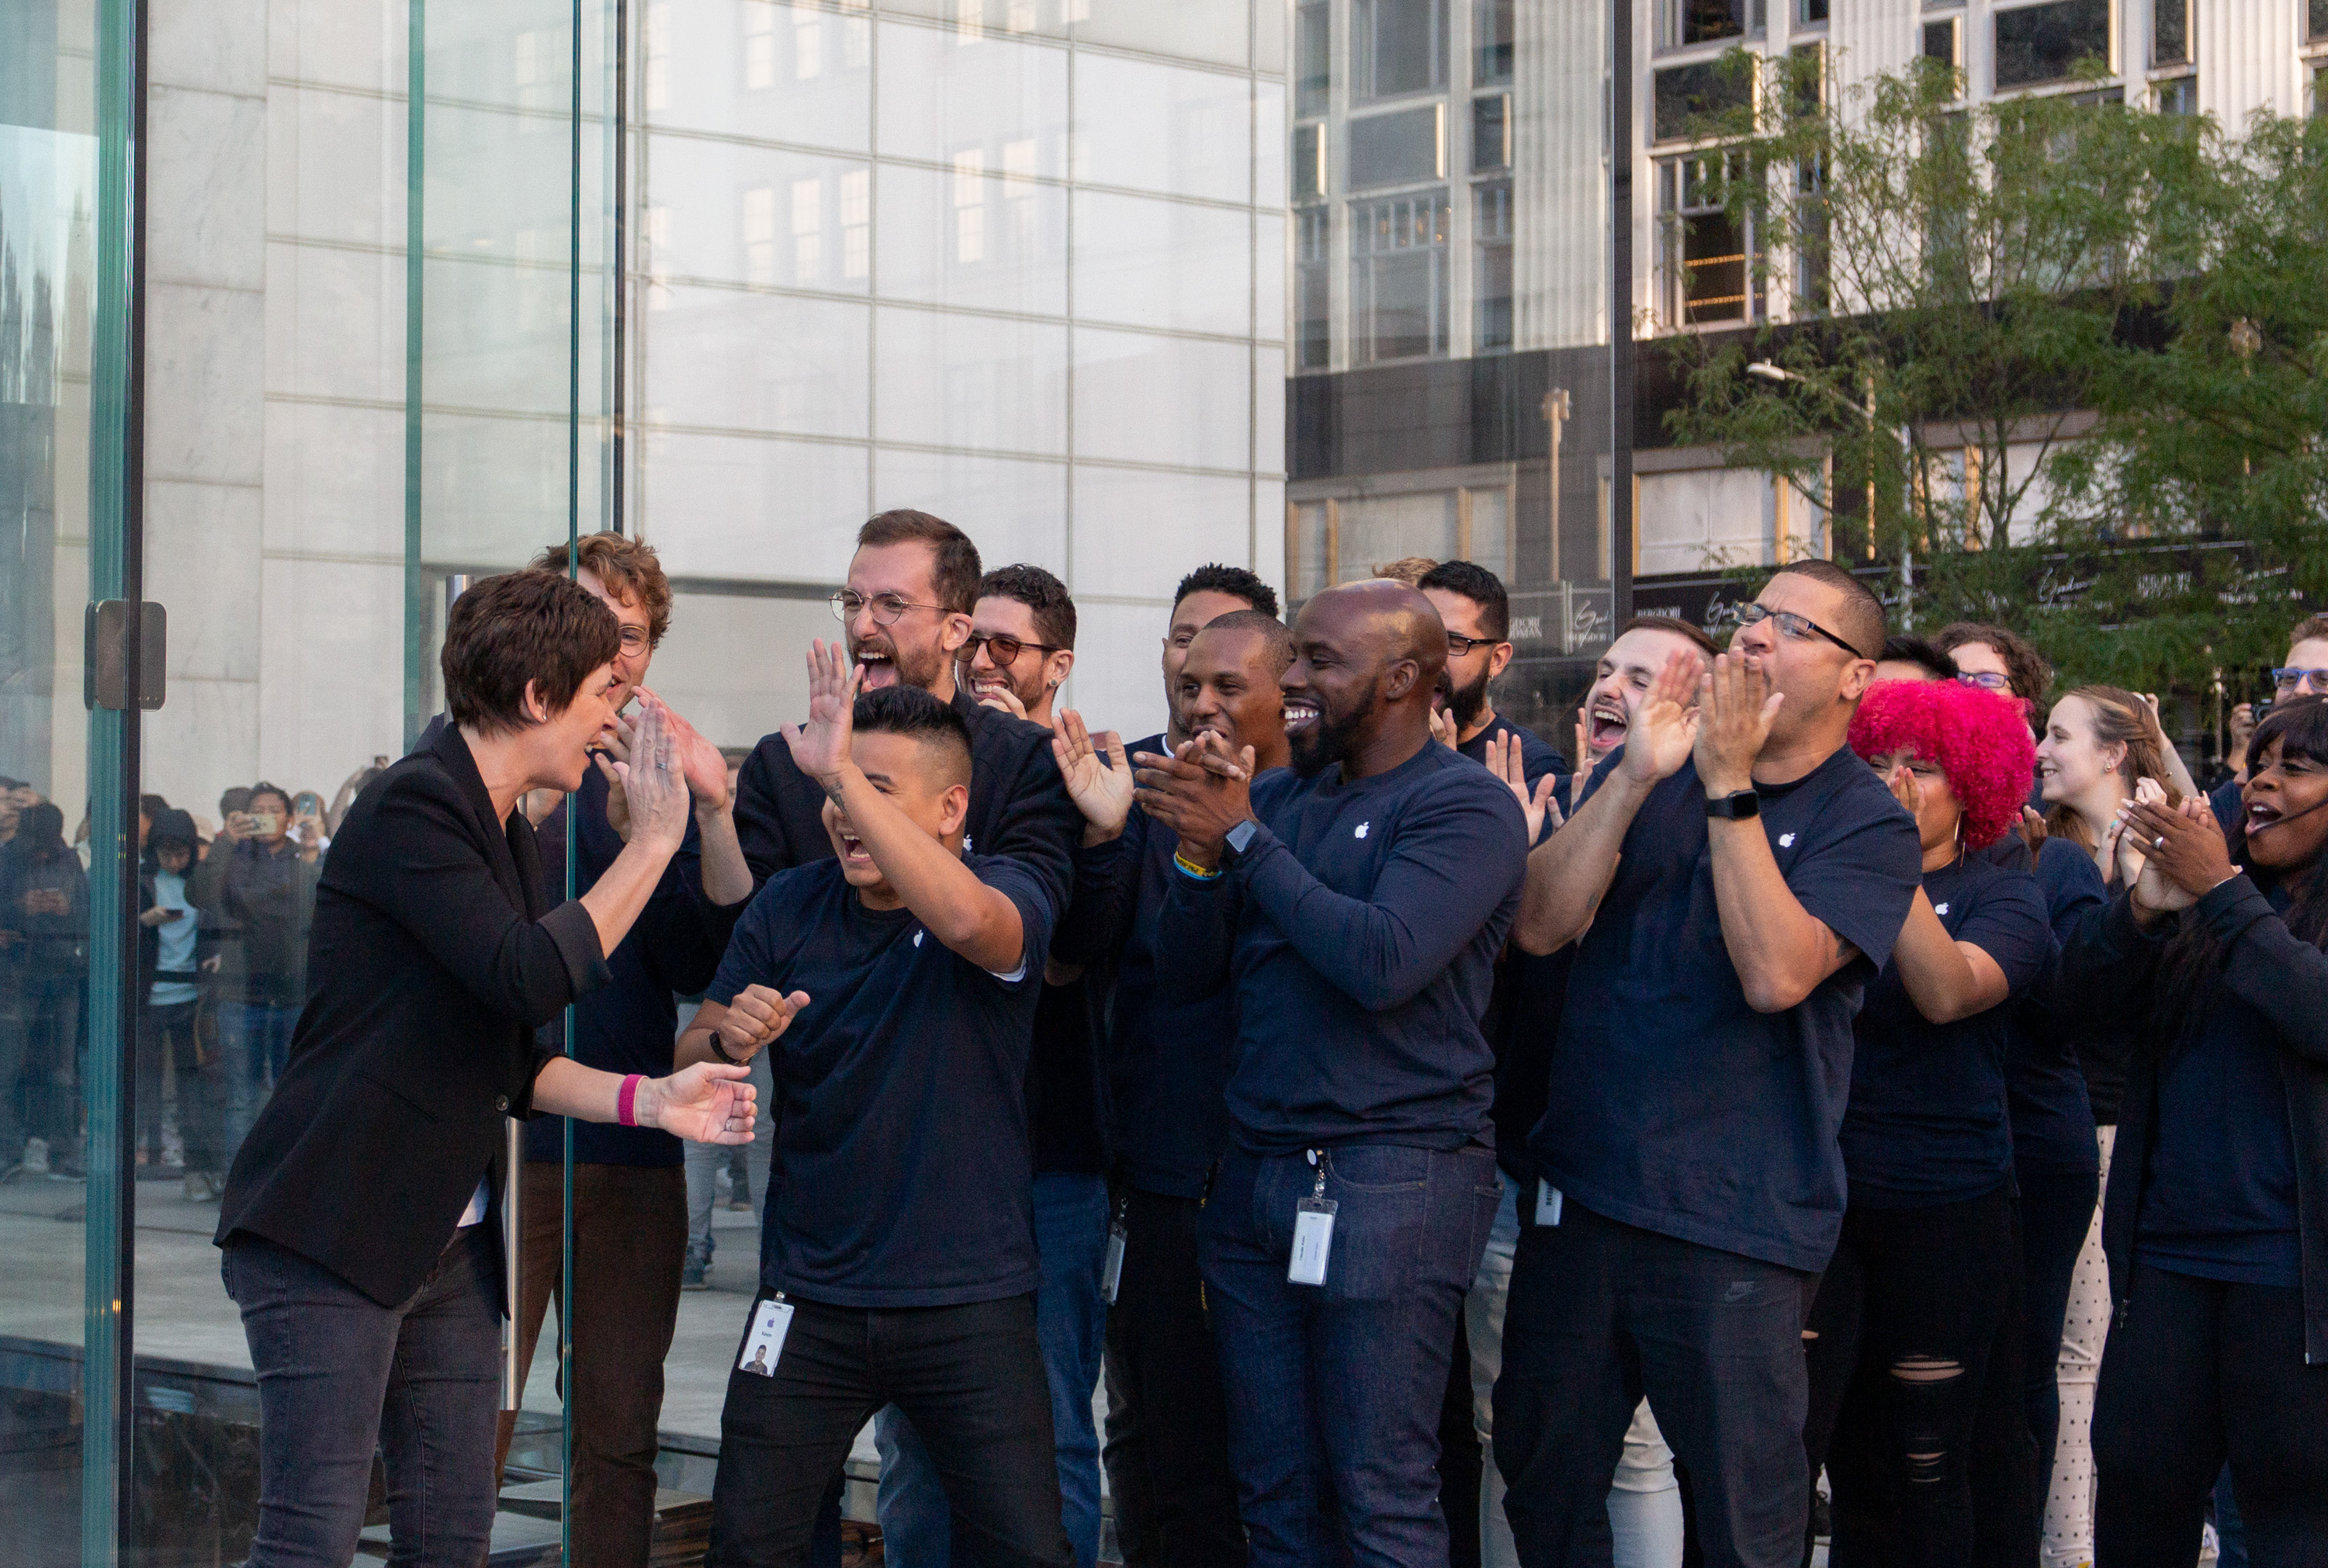 Deirdre O'Brien welcomes team members to the new Apple Fifth Avenue